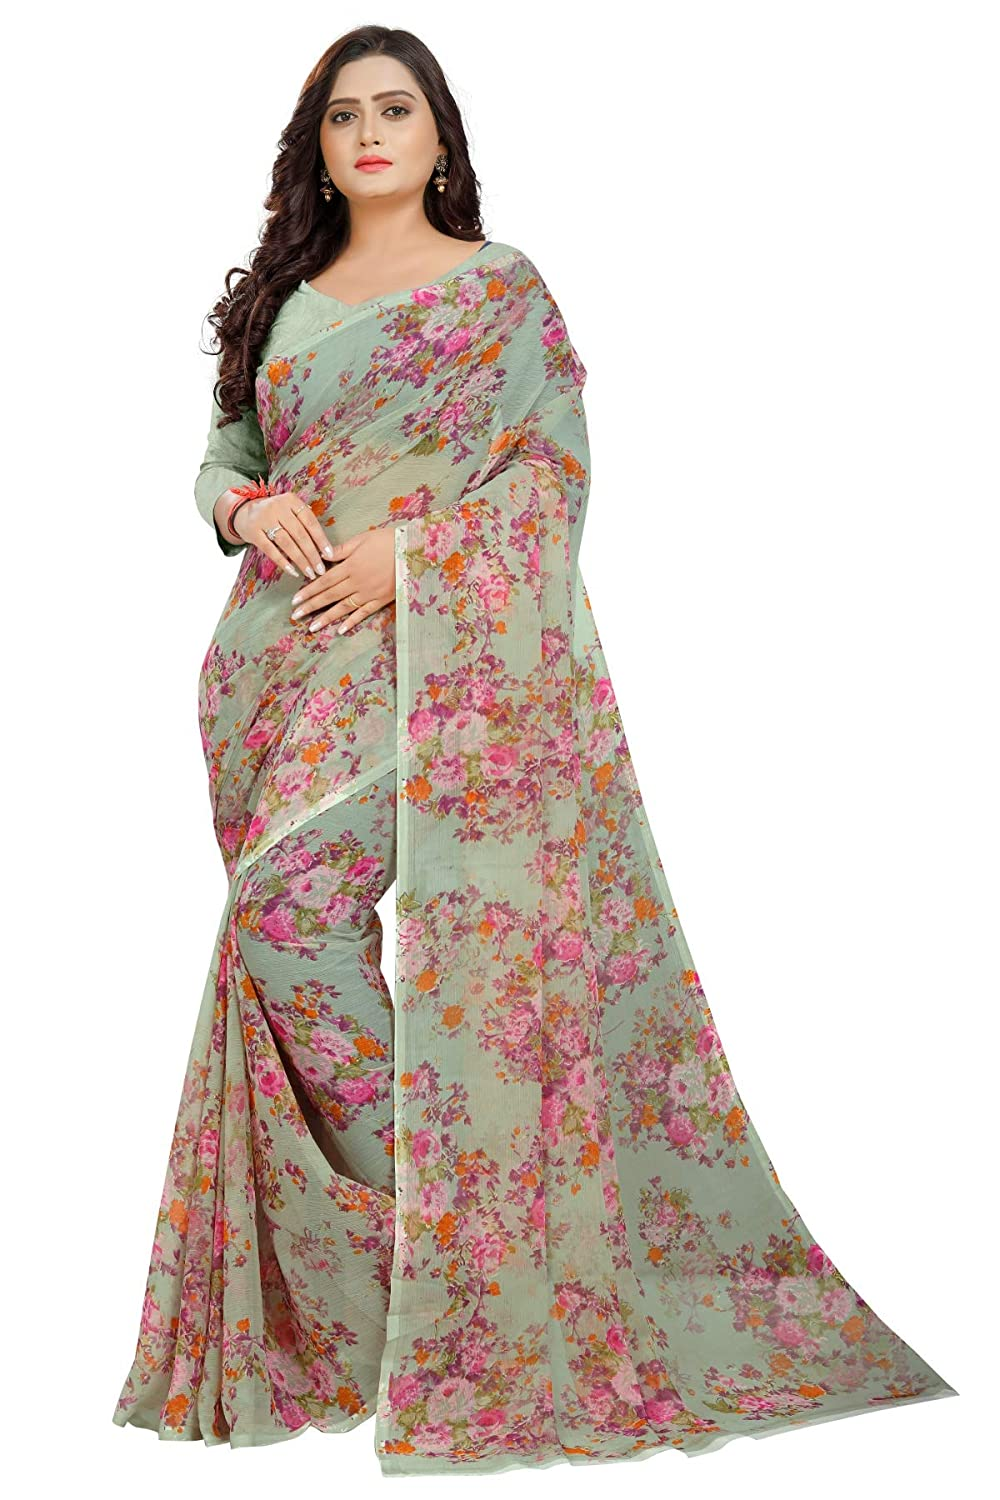 Womens Floral Chiffon Printed Saree With Blouse